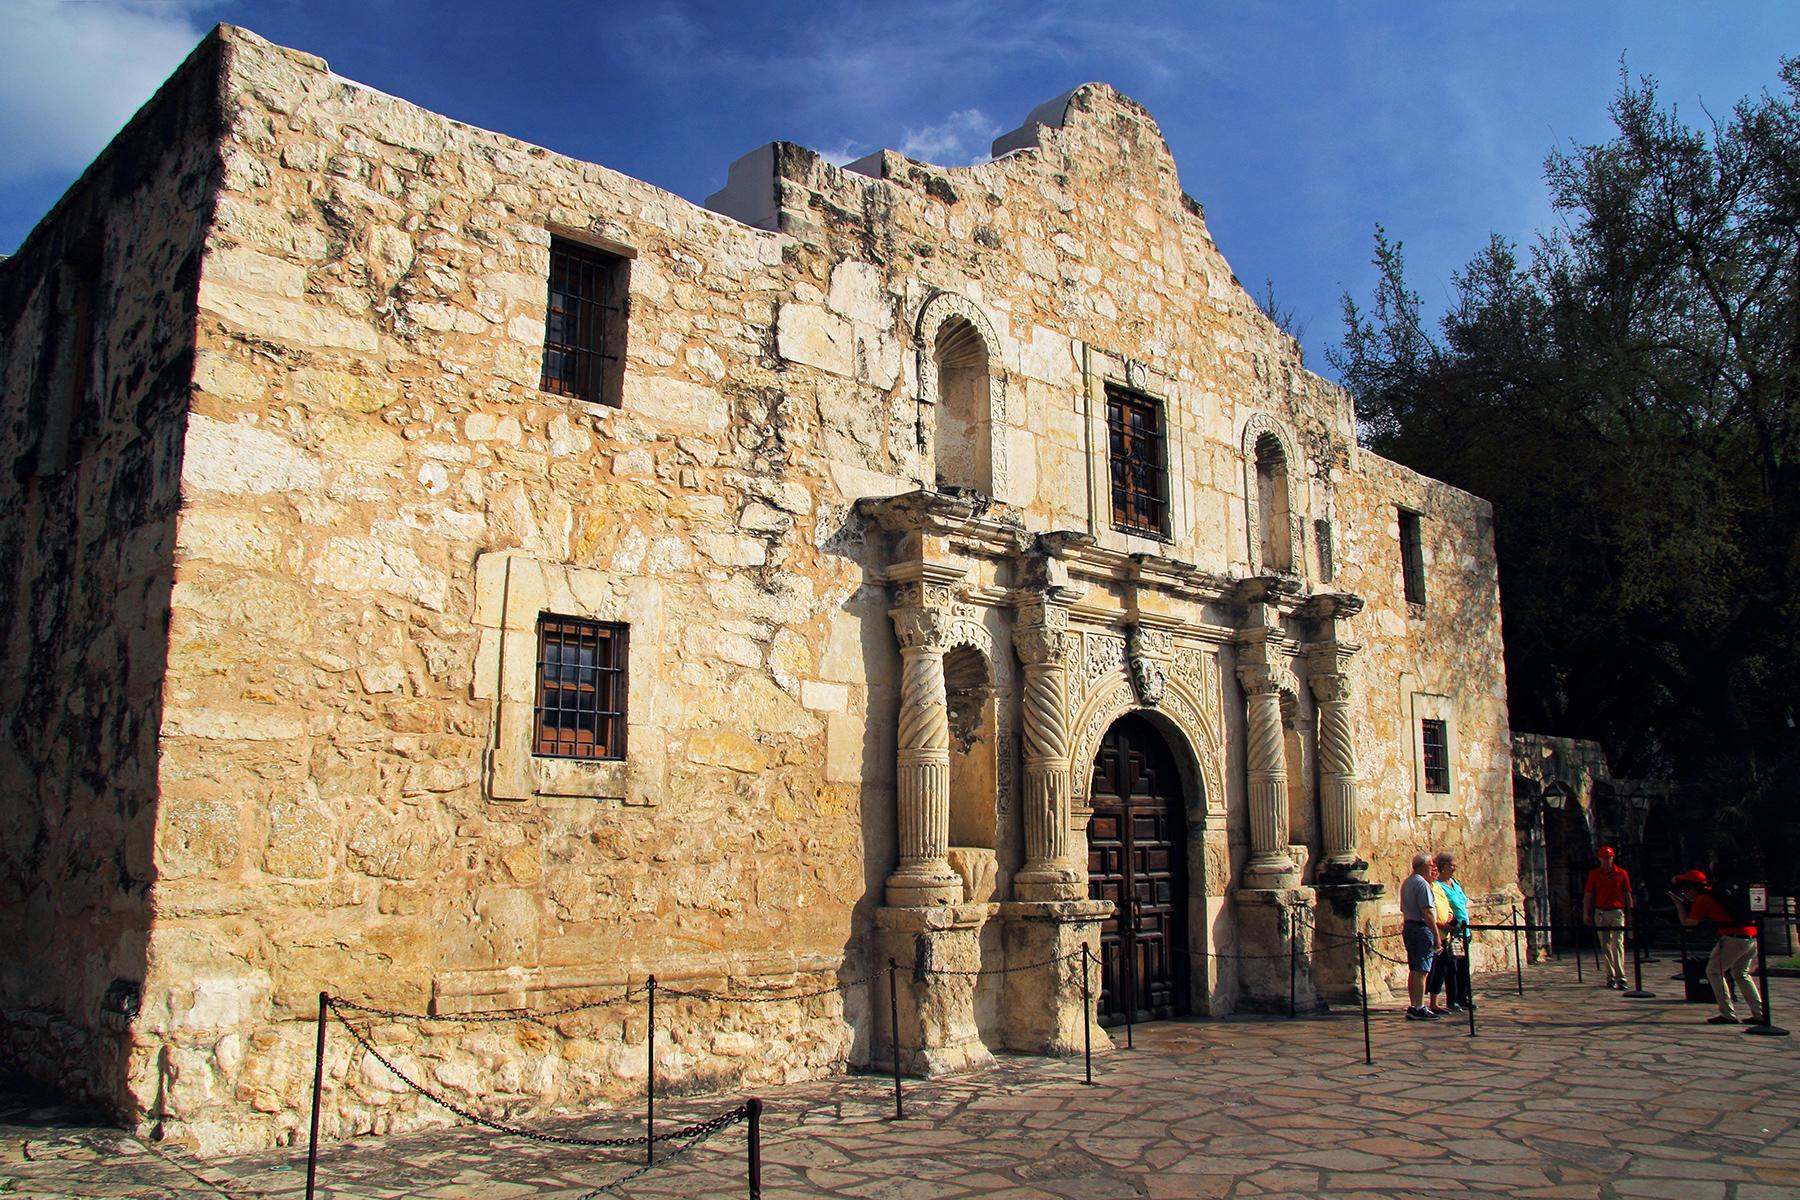 Things You Need To Know Before Visiting The Alamo Mission